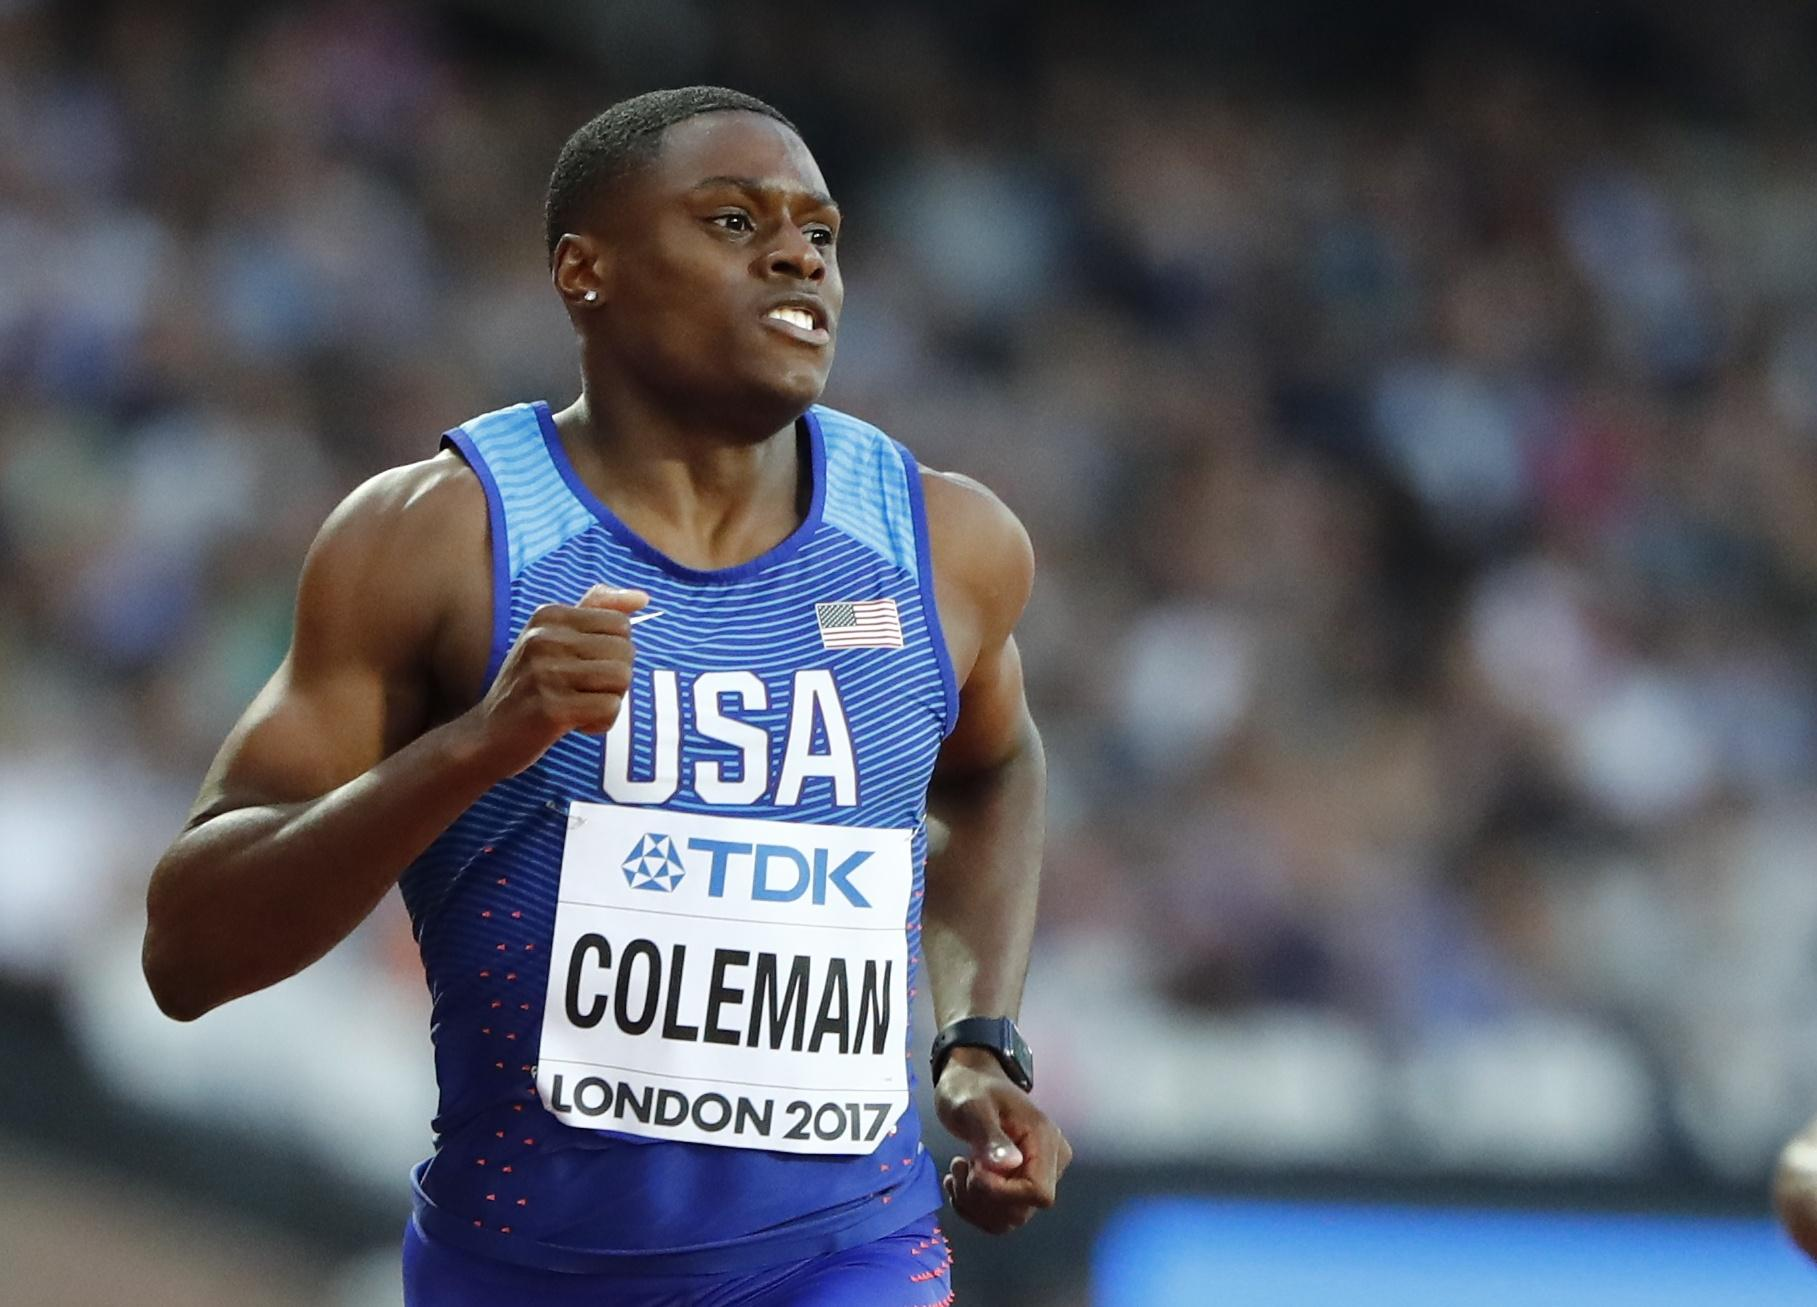 Christian Coleman obliterated Maurice Greene's world record of 6.39sec by 5/100ths of a second